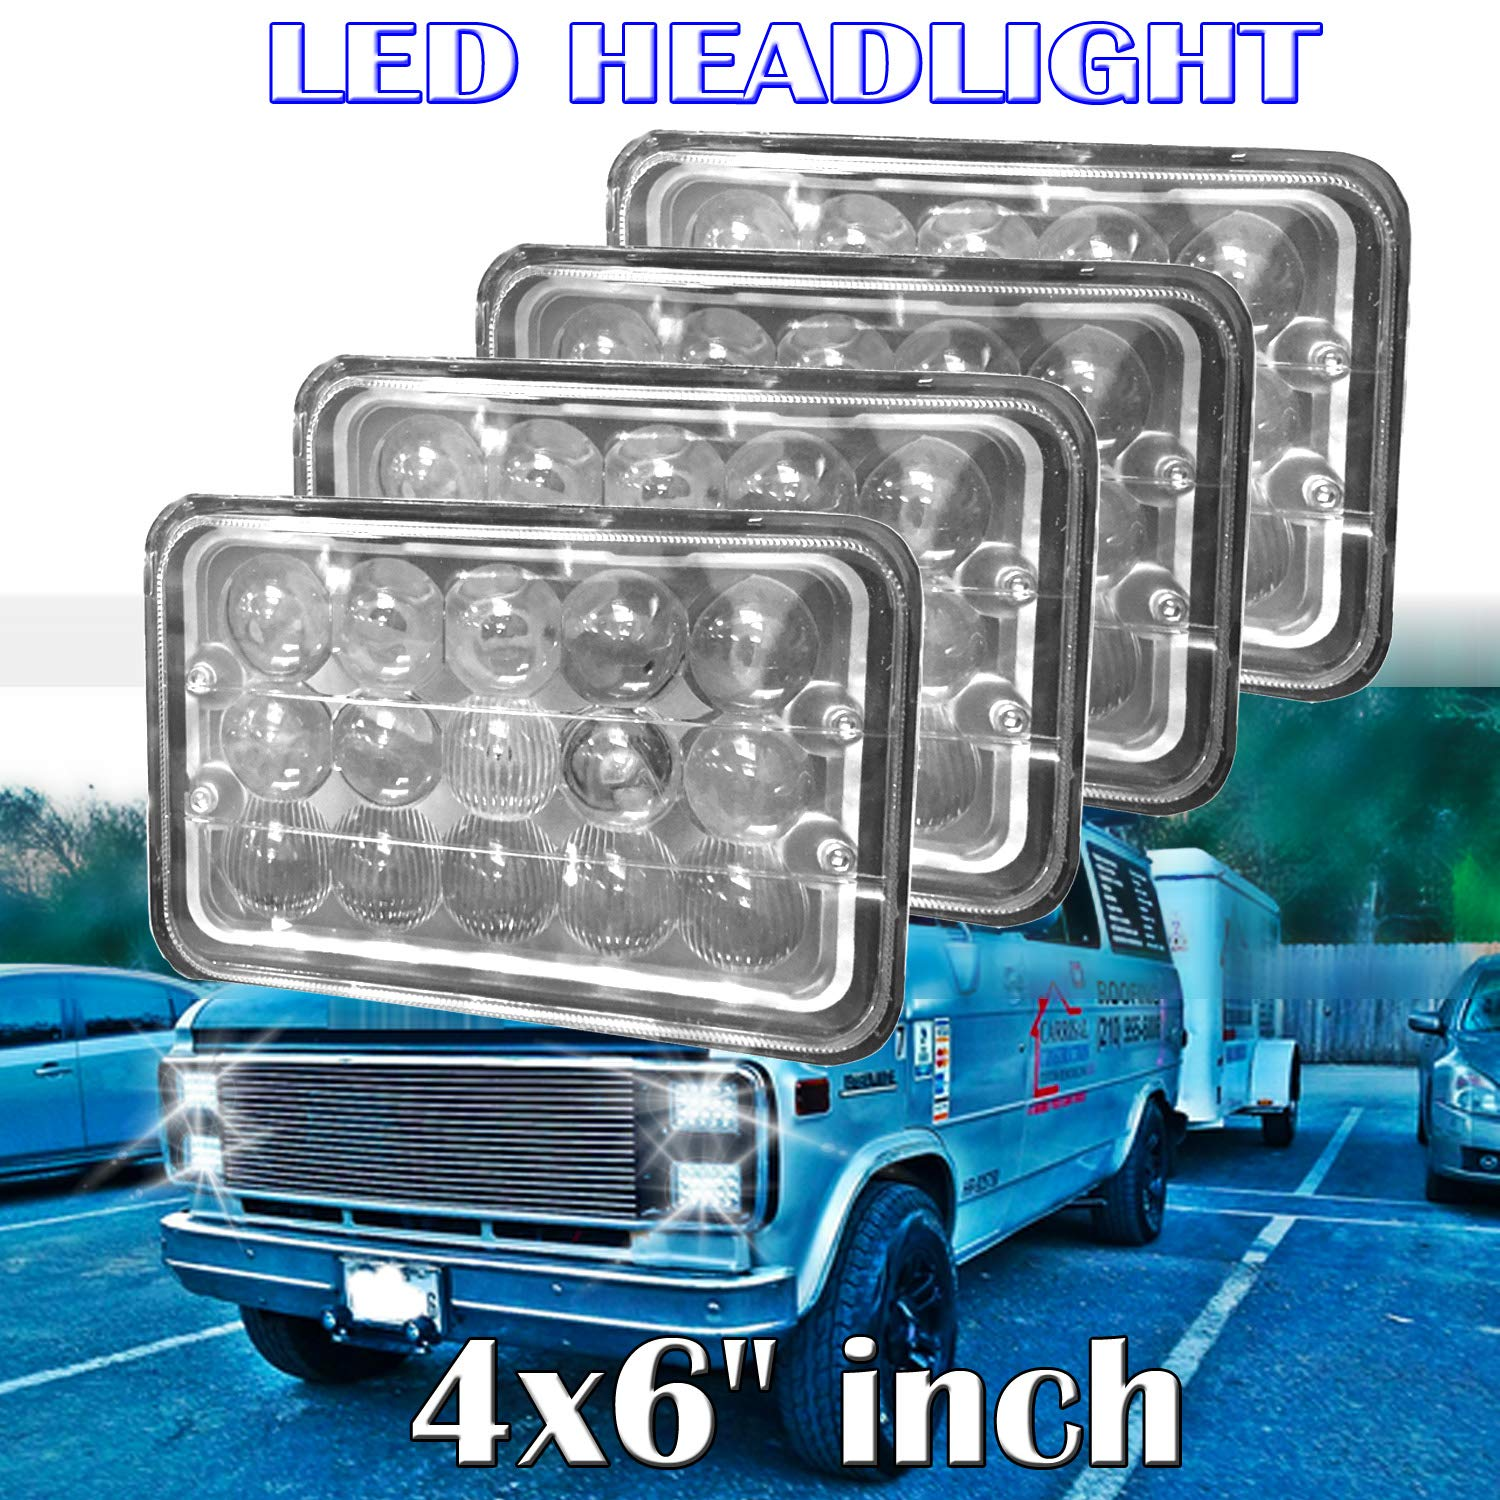 4x6 Led Headlights For Chevrolet Chevy C4500 C5500 2003 Wiring System Kodiak Rectangular High Low Sealed Beam Bright Lights To Replace H4651 H4652 H4656 H4666